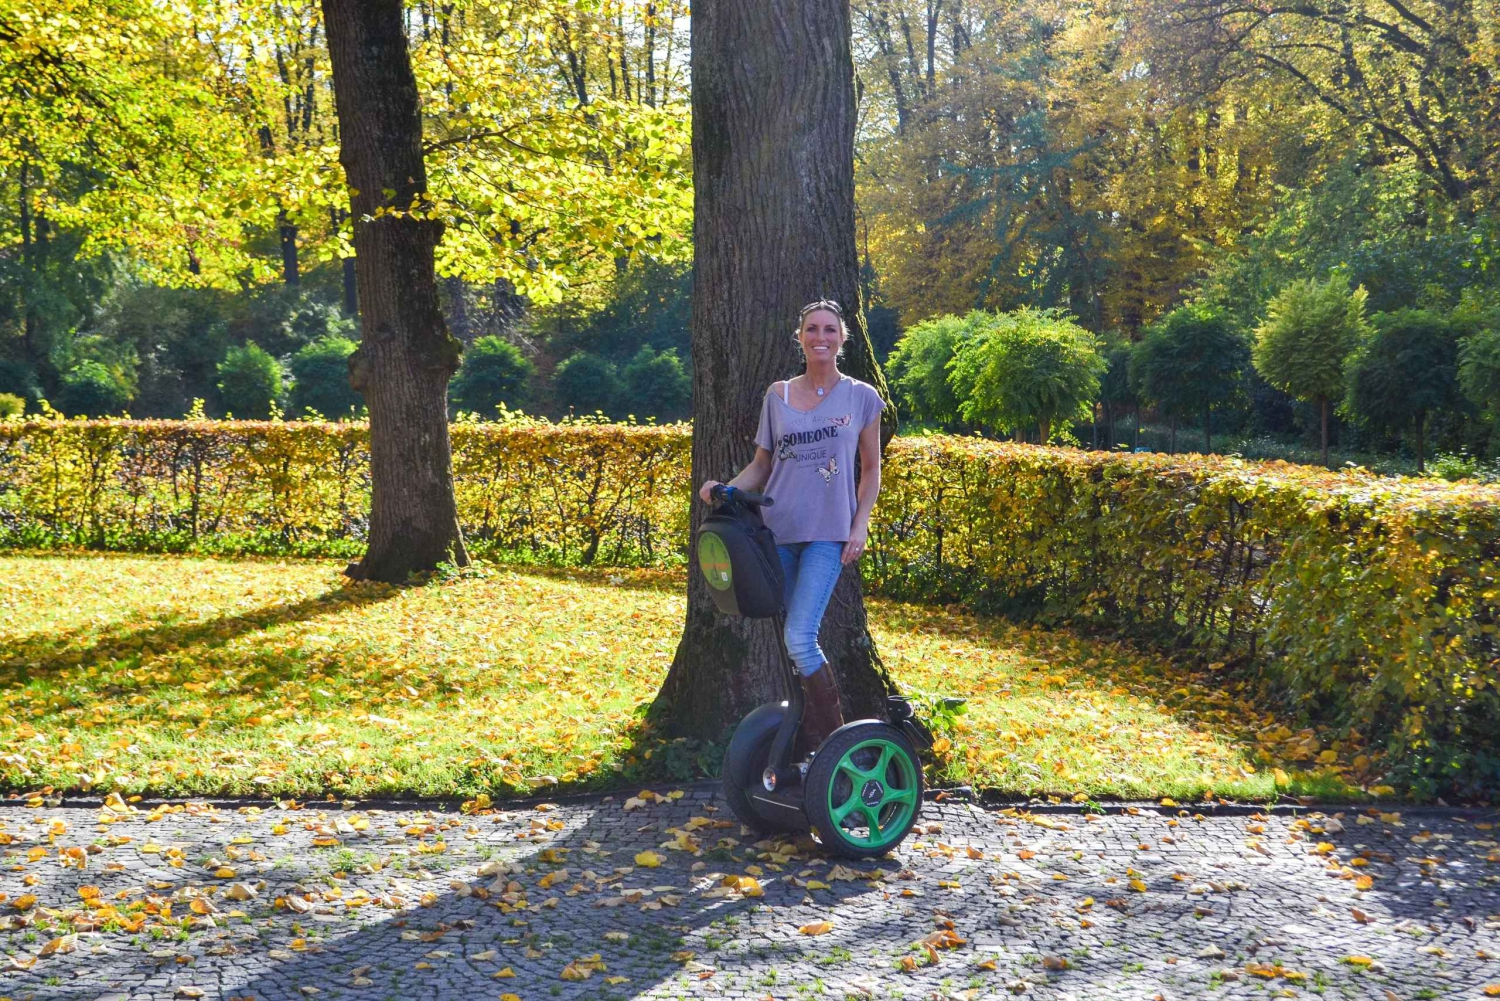 Munich 1.5-Hour Introductory Segway Tour